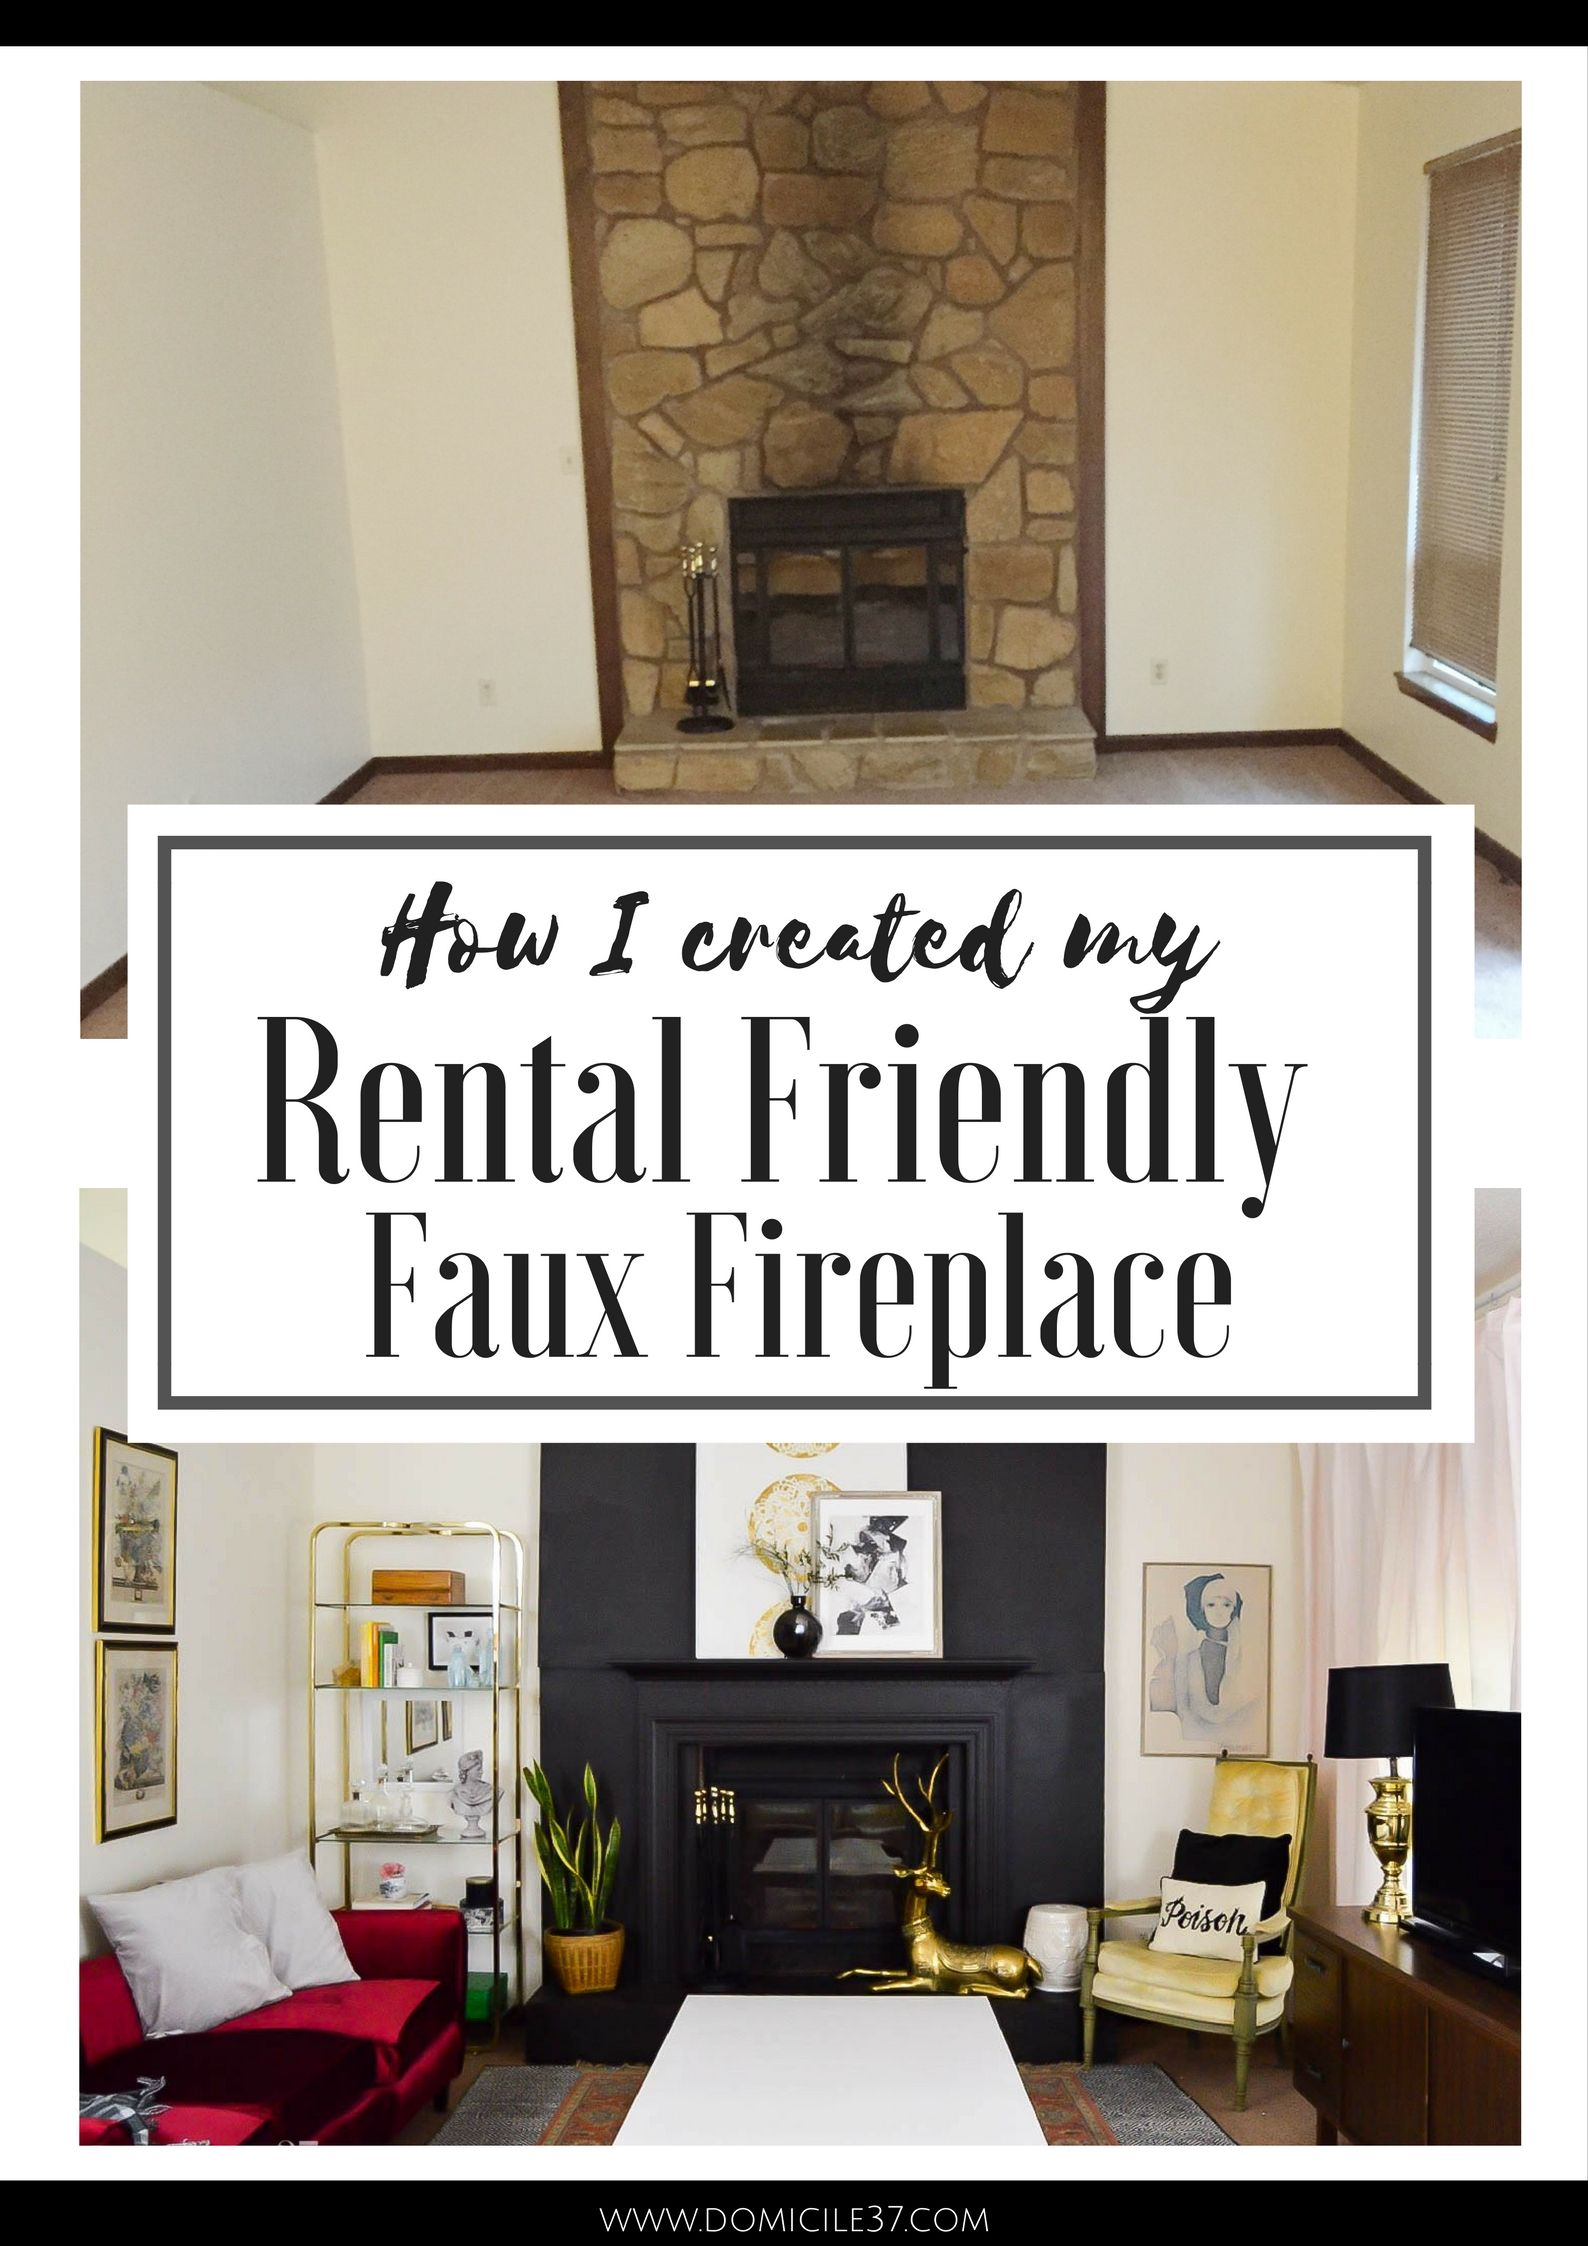 Faux Fireplace Al Friendly One Room Challenge Facade Black